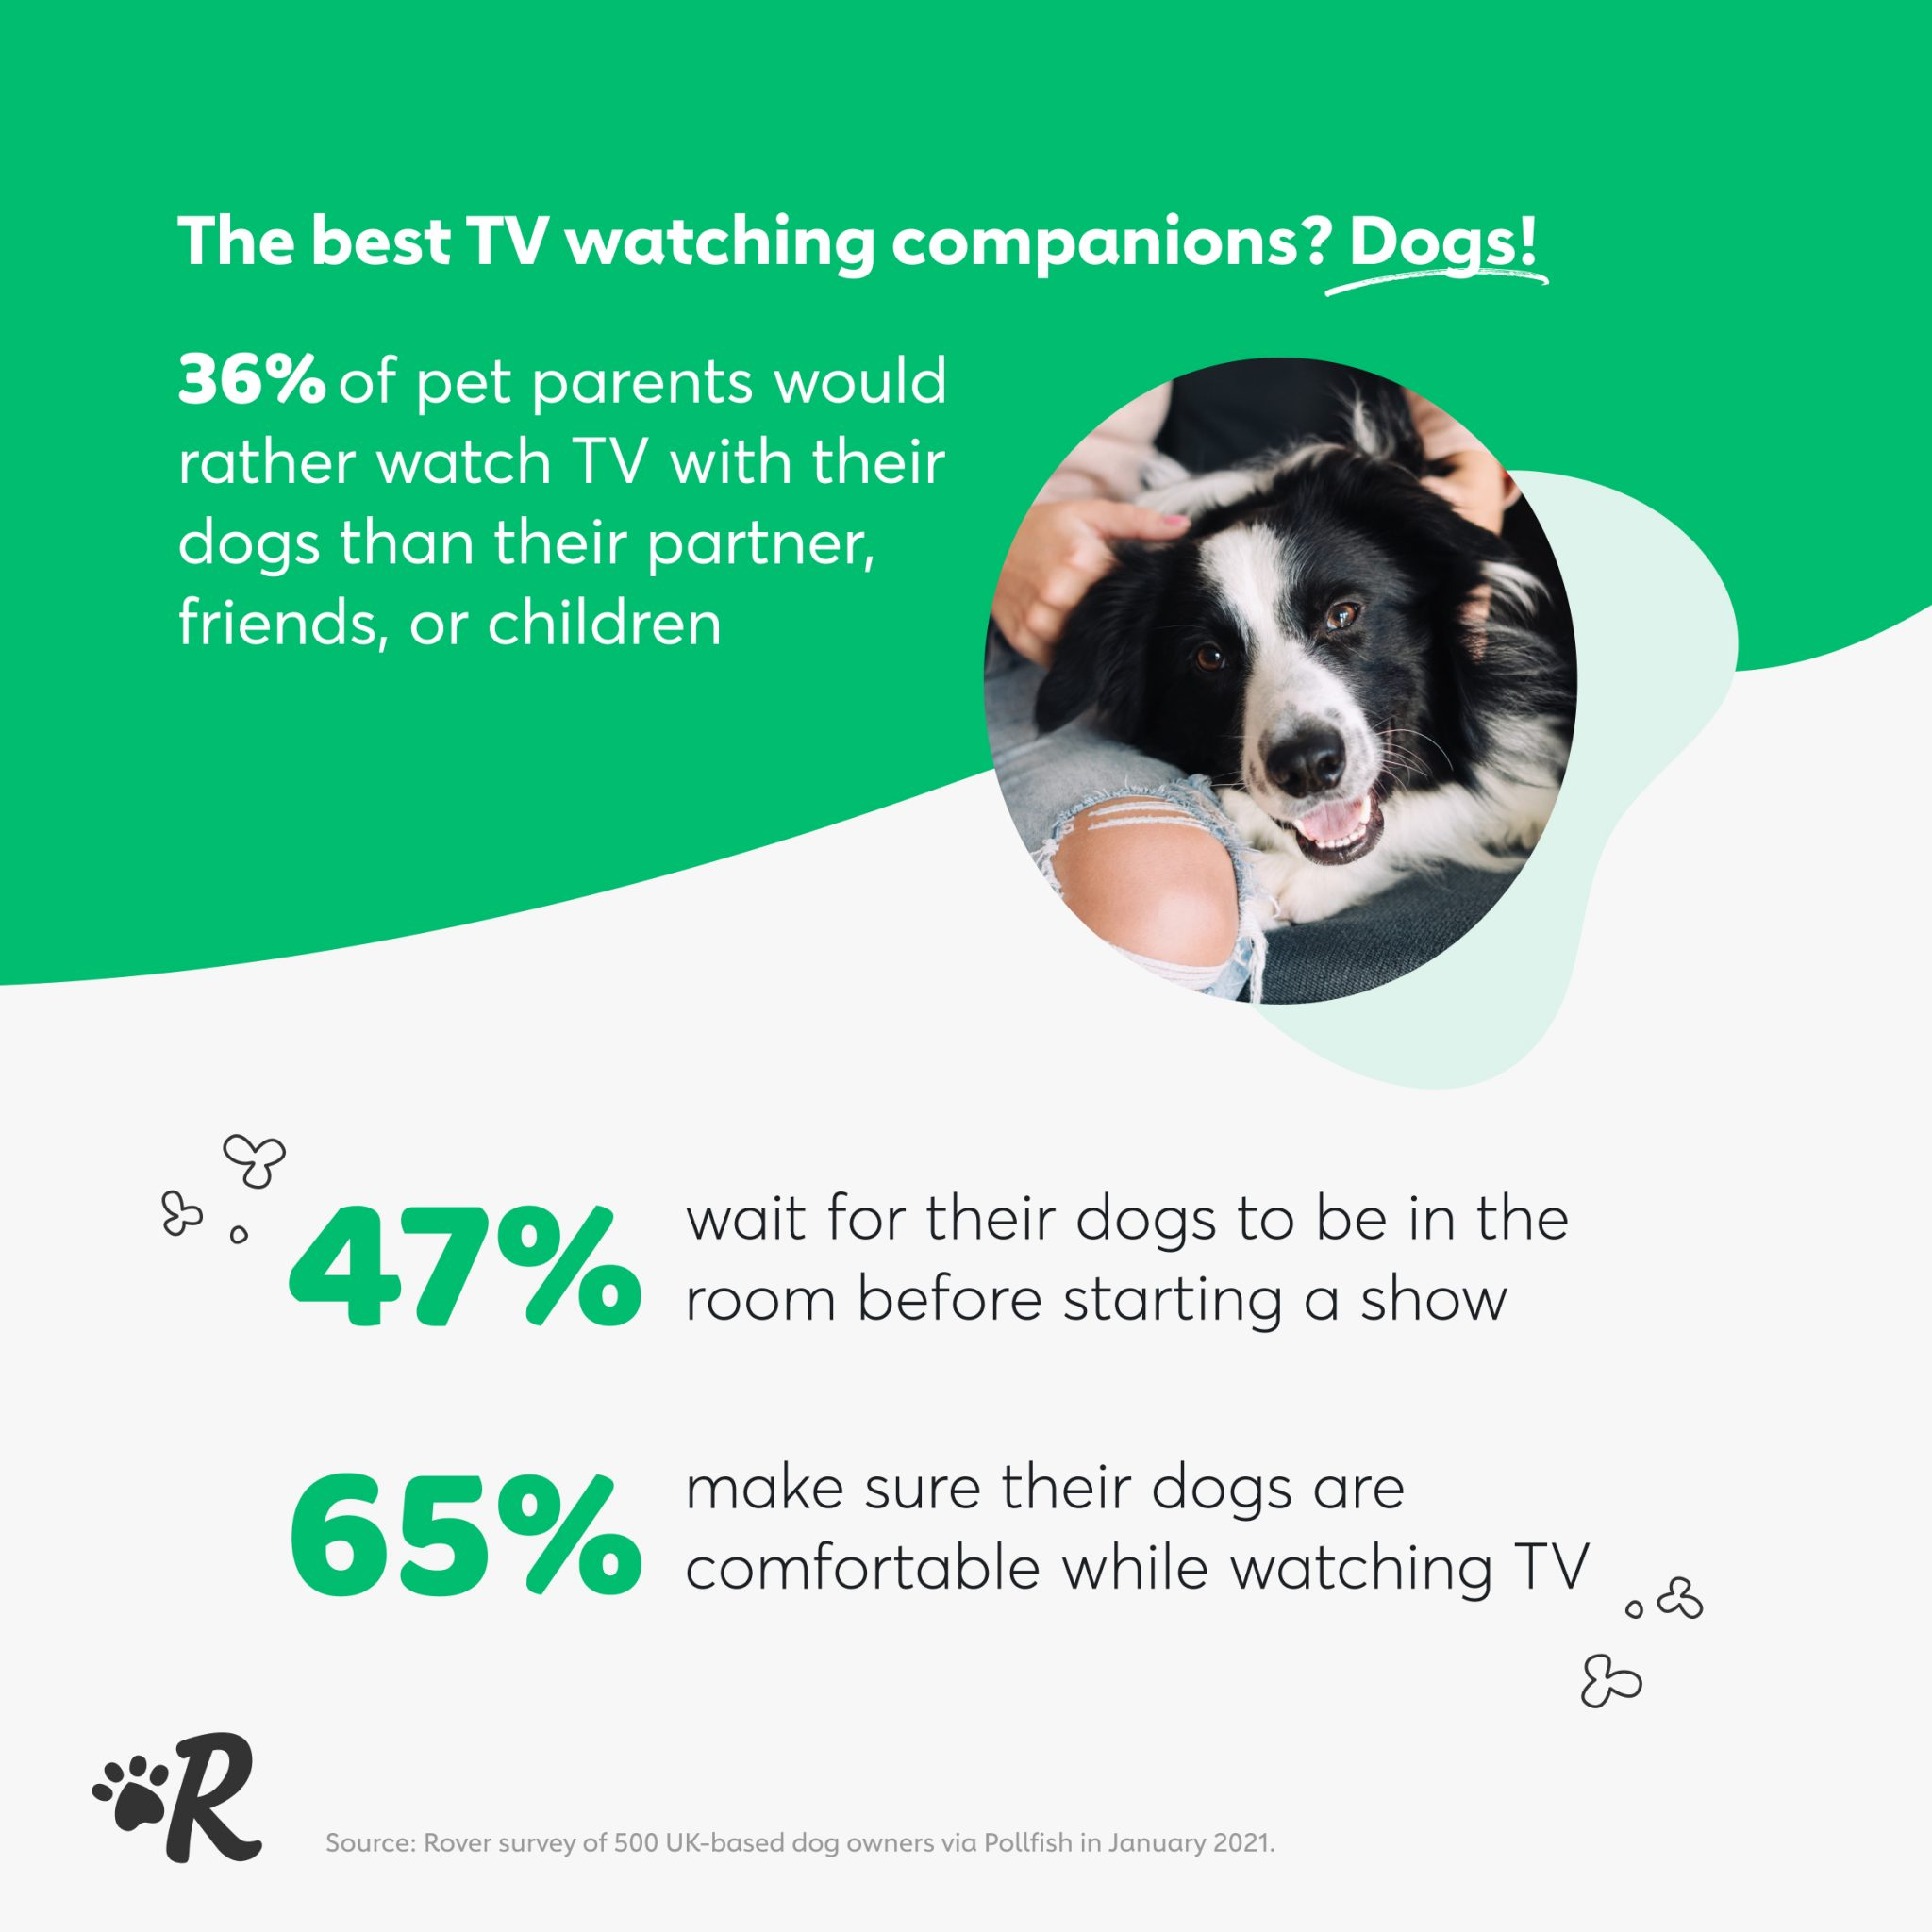 Infographic of survey data: 47% of dog owners wait for their dogs to be in the room before starting a show